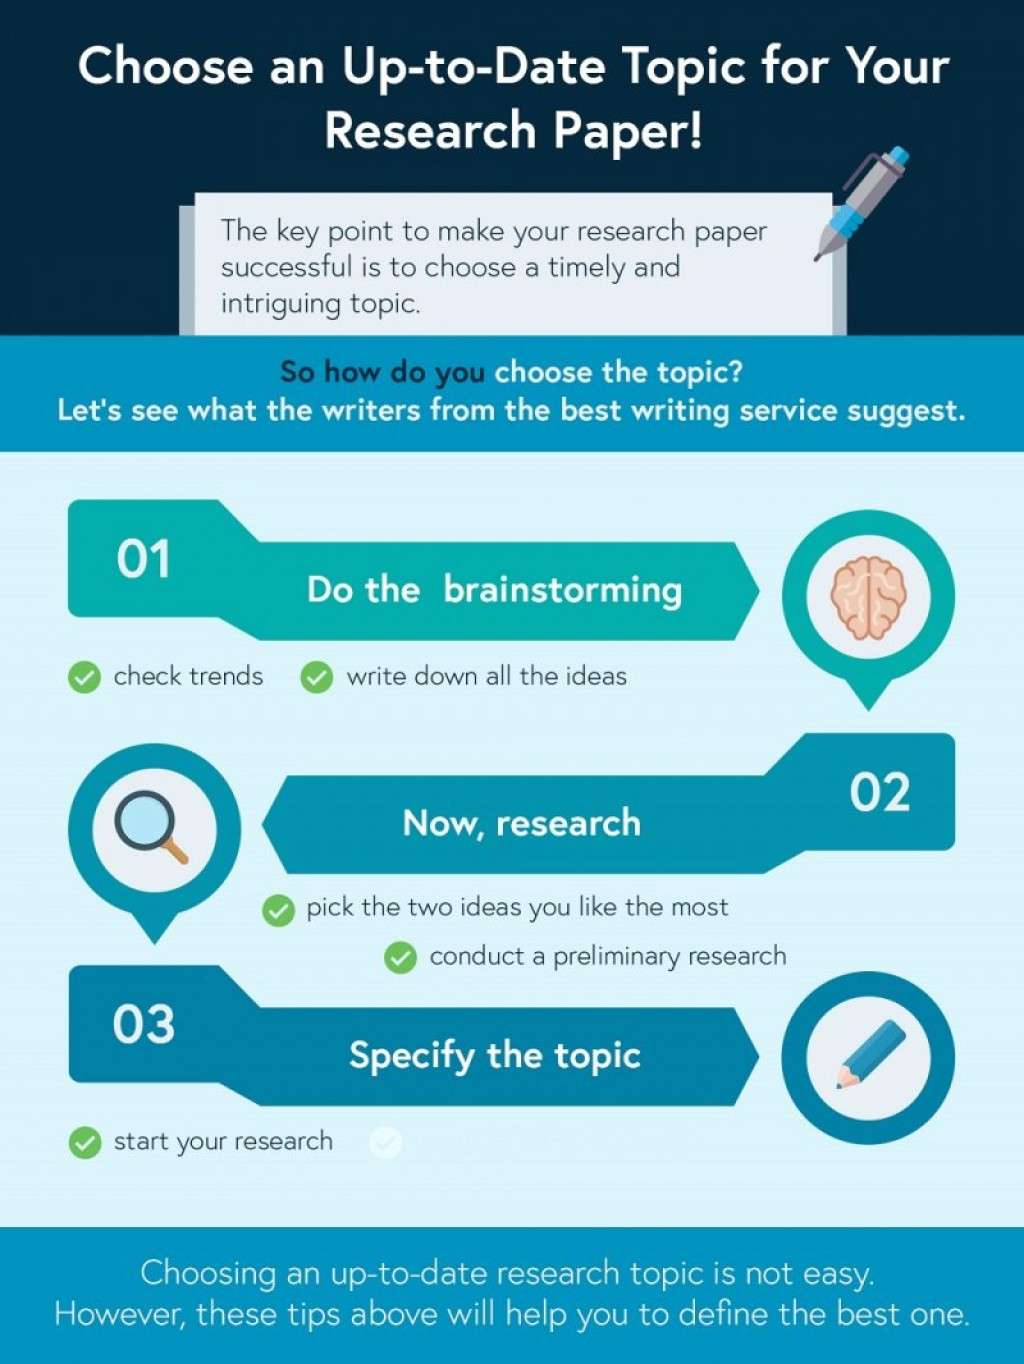 006 Research Paper Infographic Writing Dreaded Service Services In India Online Chennai Large